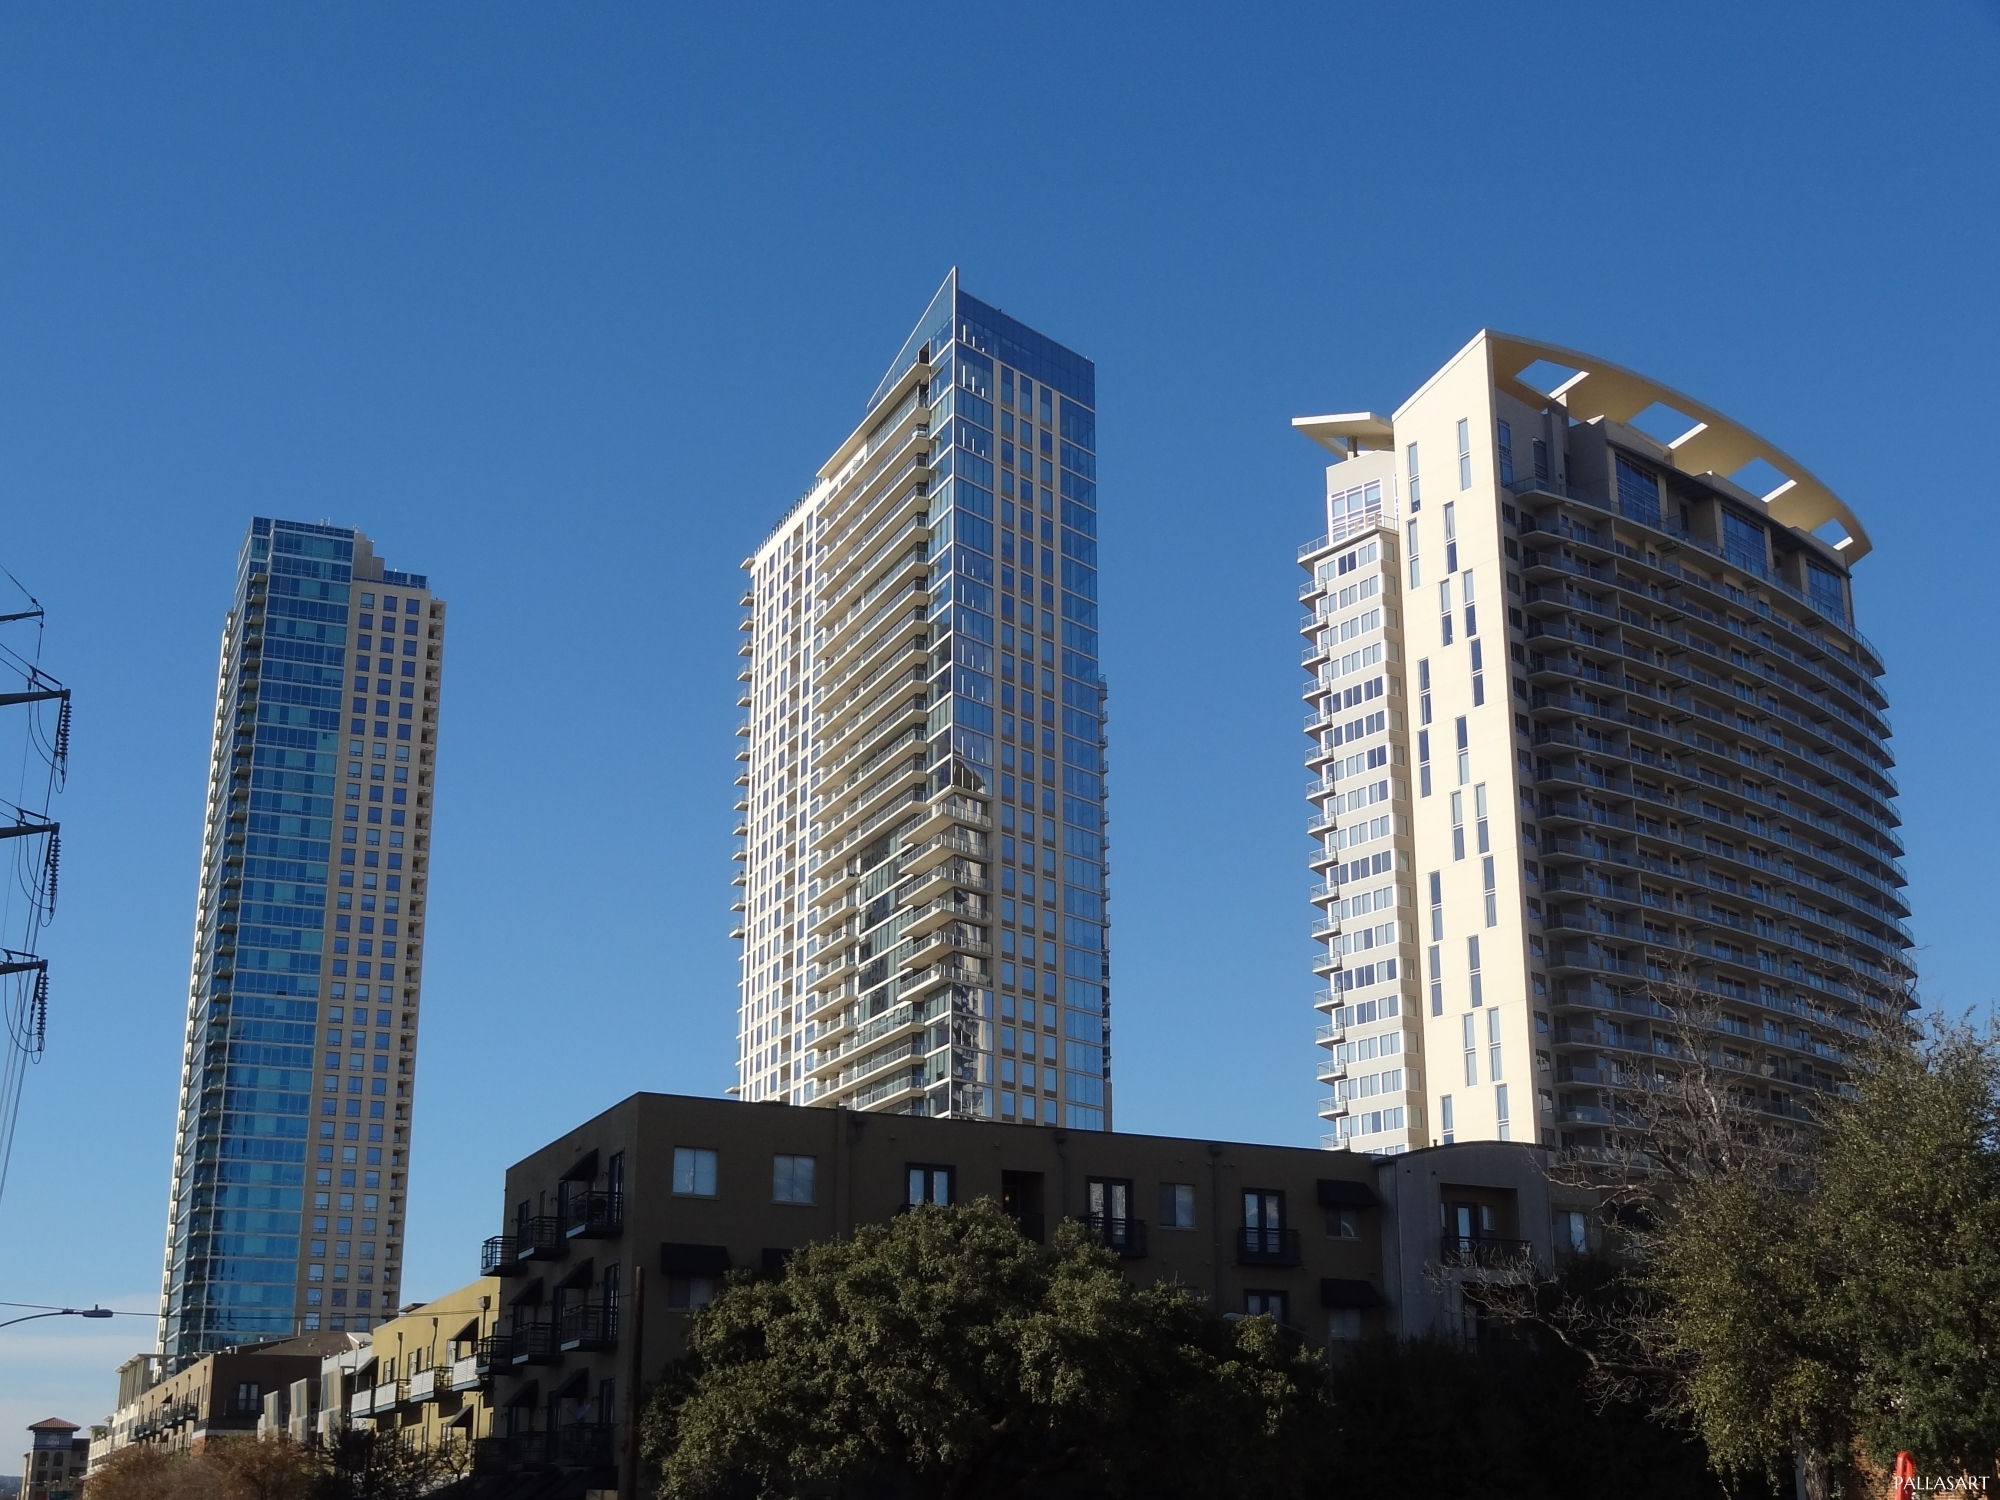 The Spring, The Bowie, The Monarch residential towers